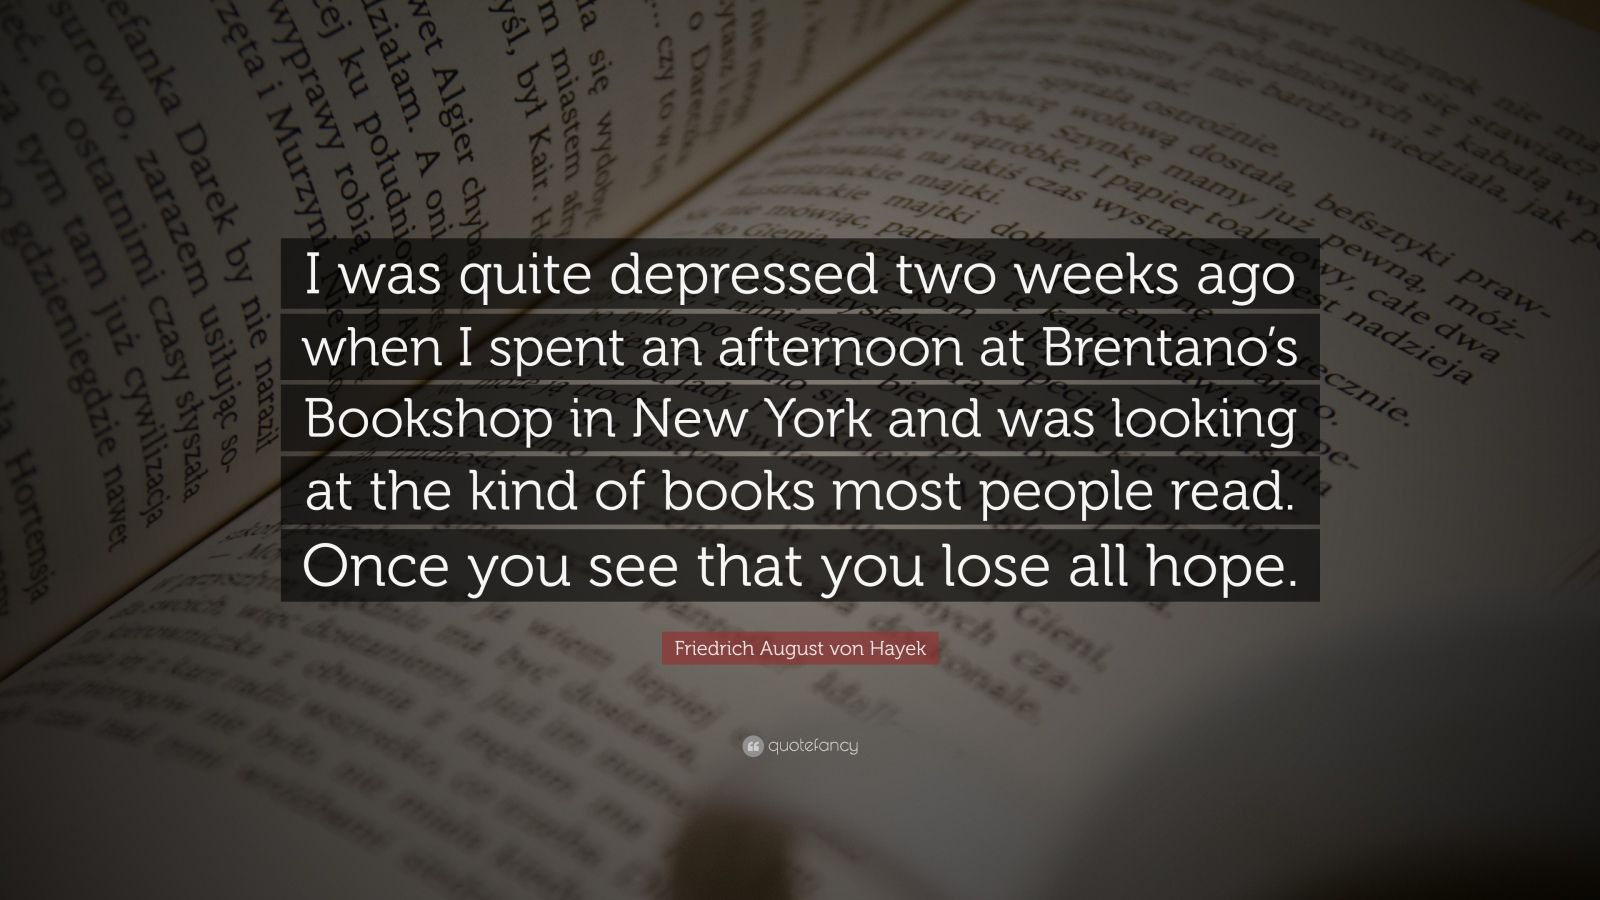 "Friedrich August von Hayek Quote: ""I was quite depressed two weeks ago when I spent an afternoon at Brentano's Bookshop in New York and was looking at the kind of books most people read. Once you see that you lose all hope."""